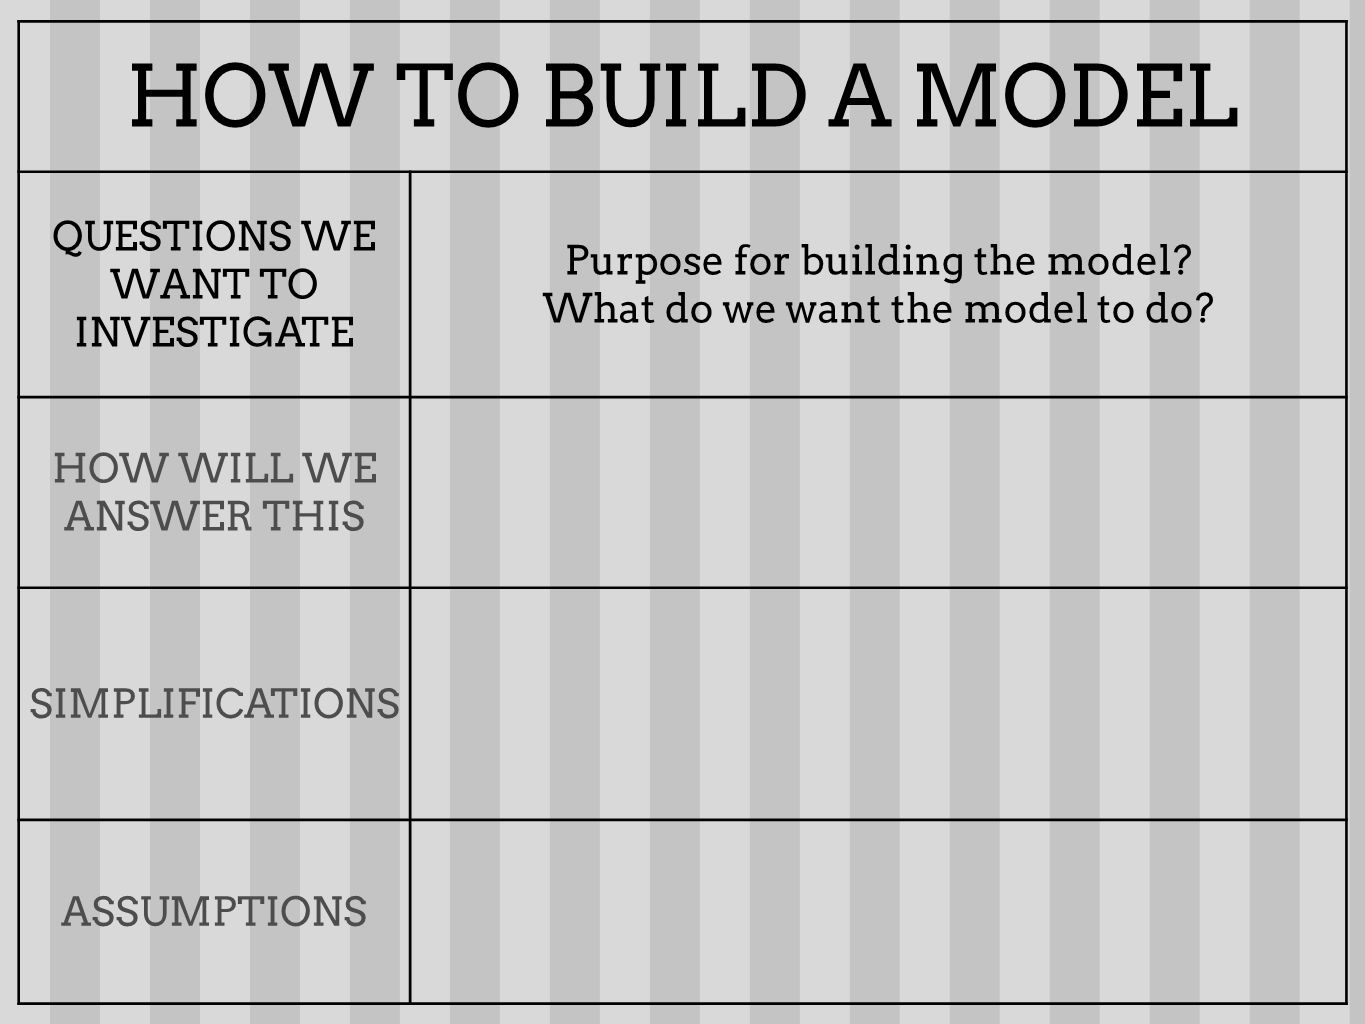 HOW TO BUILD A MODEL QUESTIONS WE WANT TO INVESTIGATE Purpose for building the model? What do we want the model to do? HOW WILL WE ANSWER THIS SIMPLIF